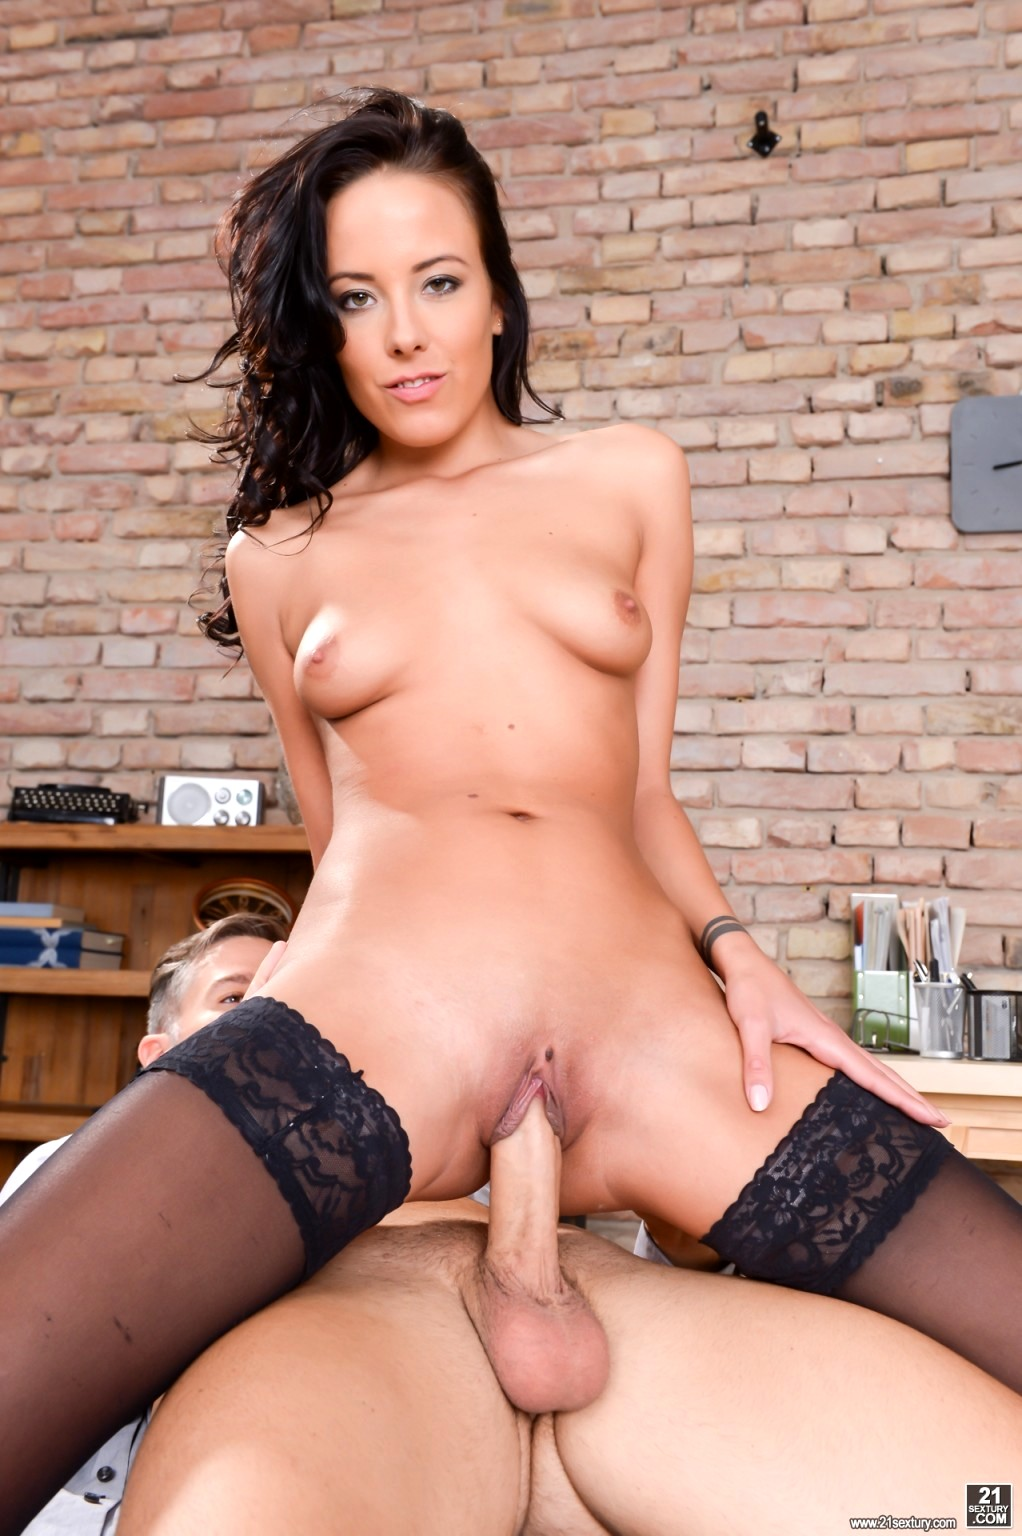 Babe Today 21 Sextury Lexi Layo Toby Sexy Stockings -2313